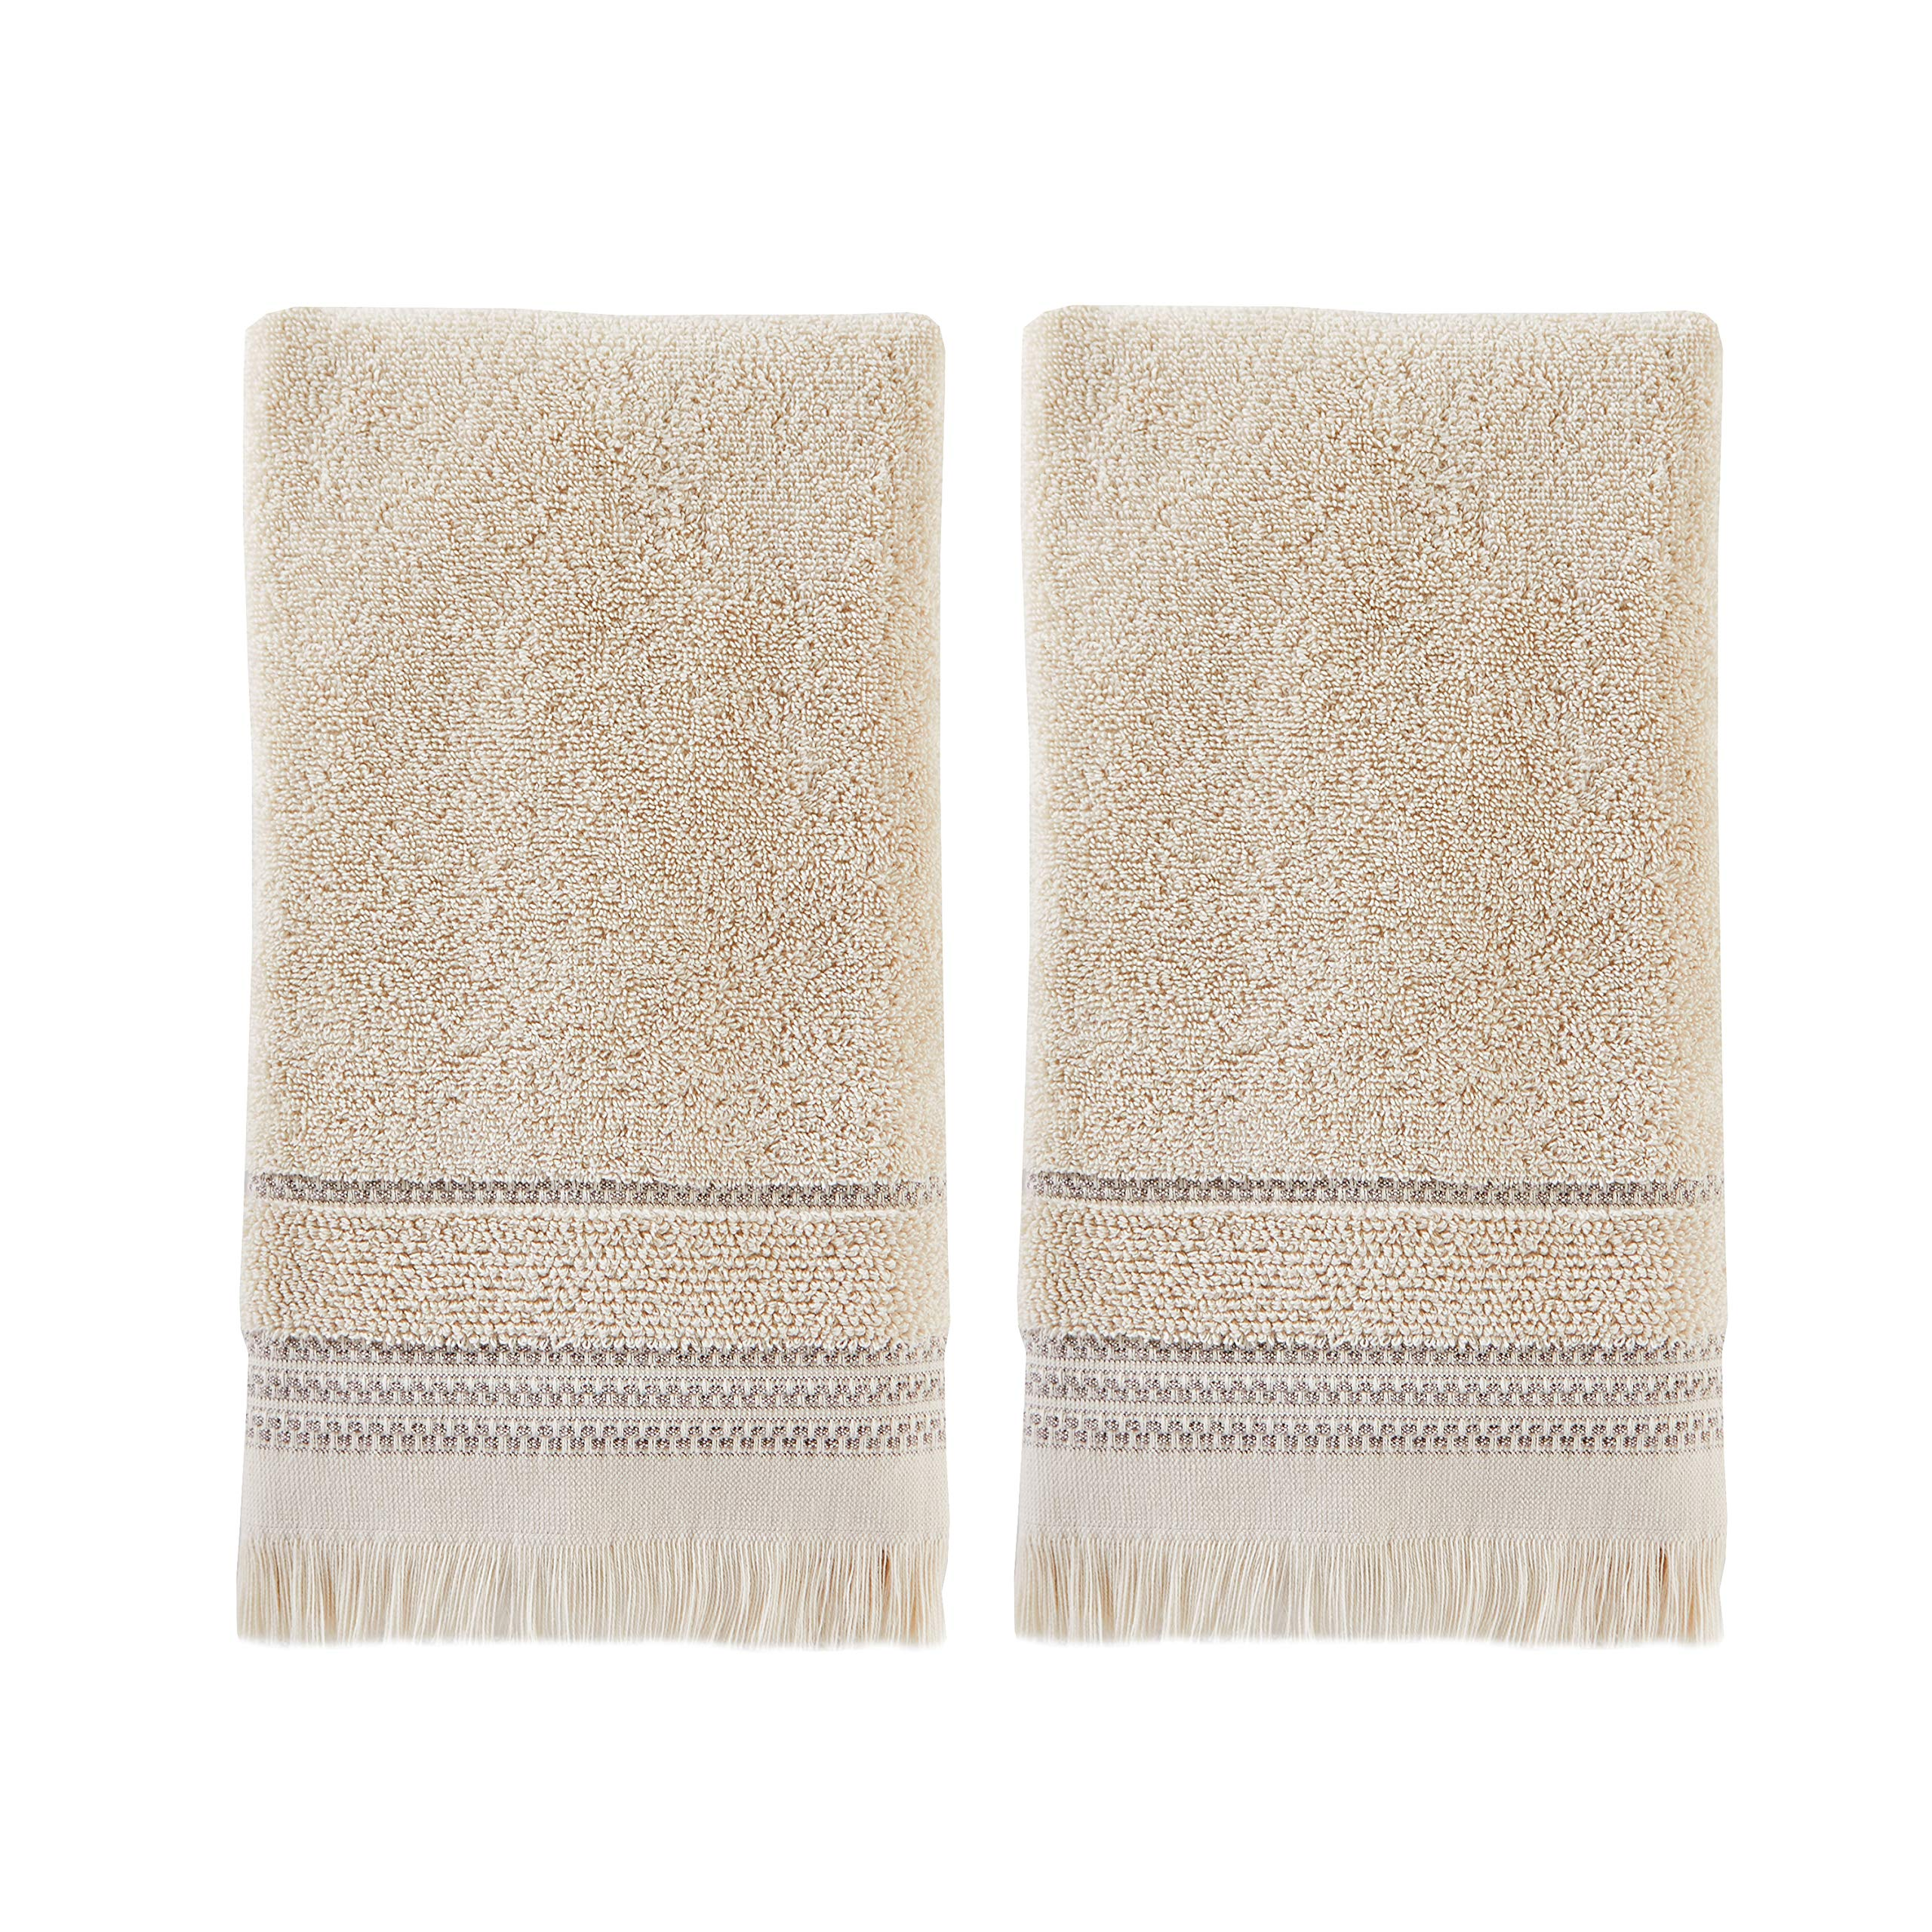 SKL Home by Saturday Knight Ltd.  Jude Fringe 2-Piece Hand Towel Set, Taupe